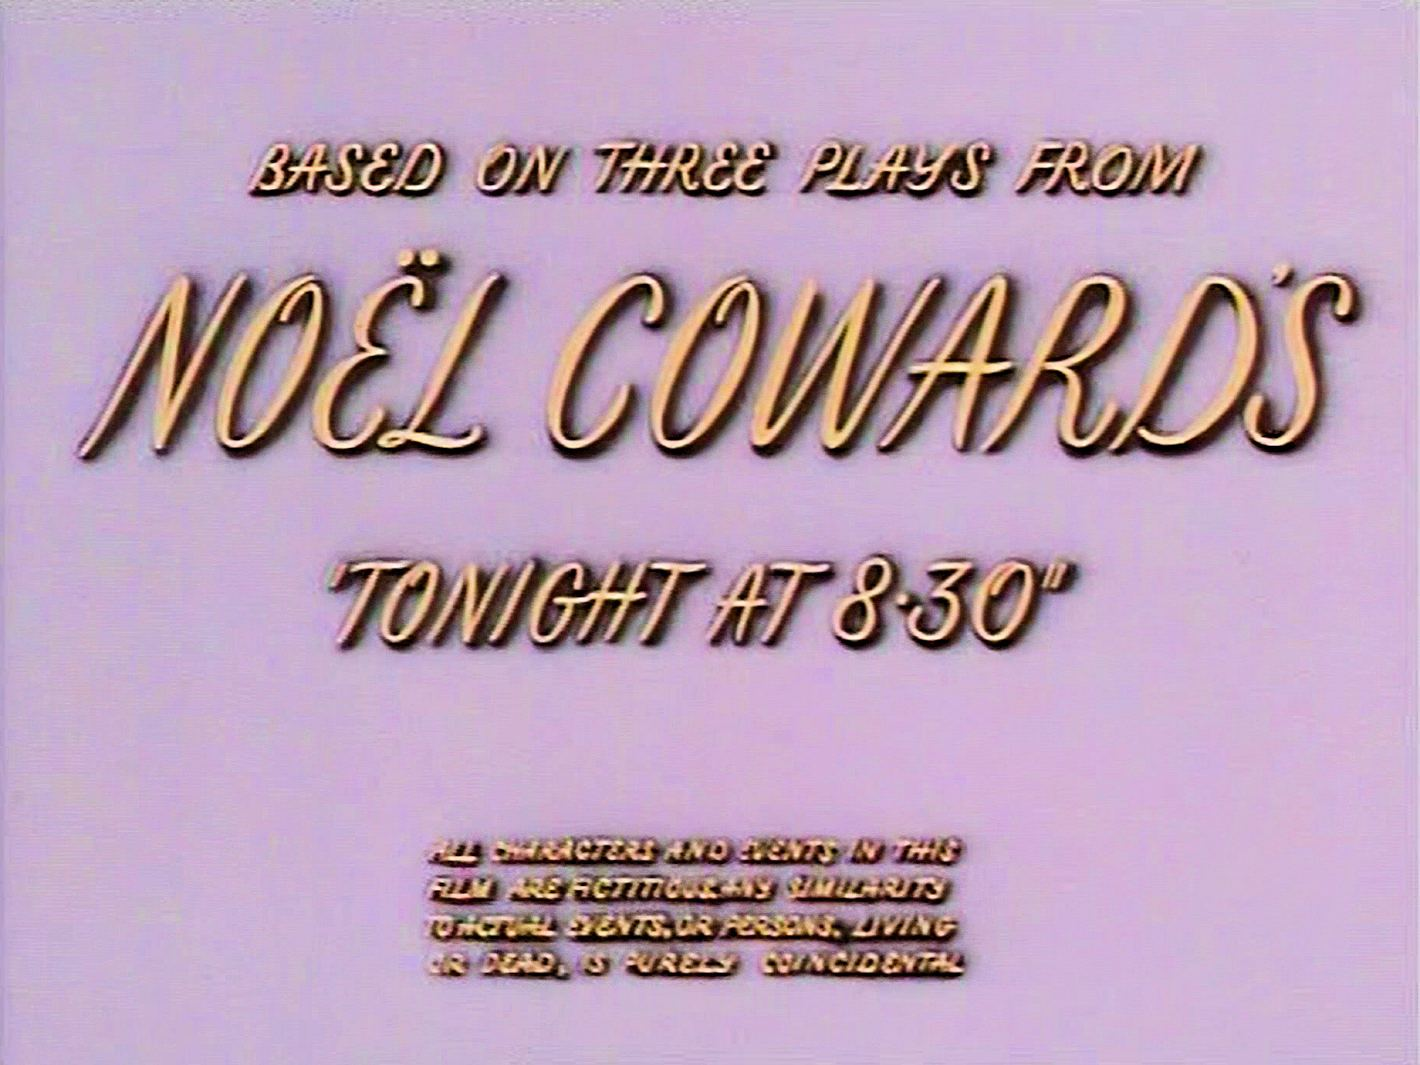 Main title from Meet Me Tonight (1952) (5).  Based on three plays from Noël Coward's 'Tonight at 8.30'